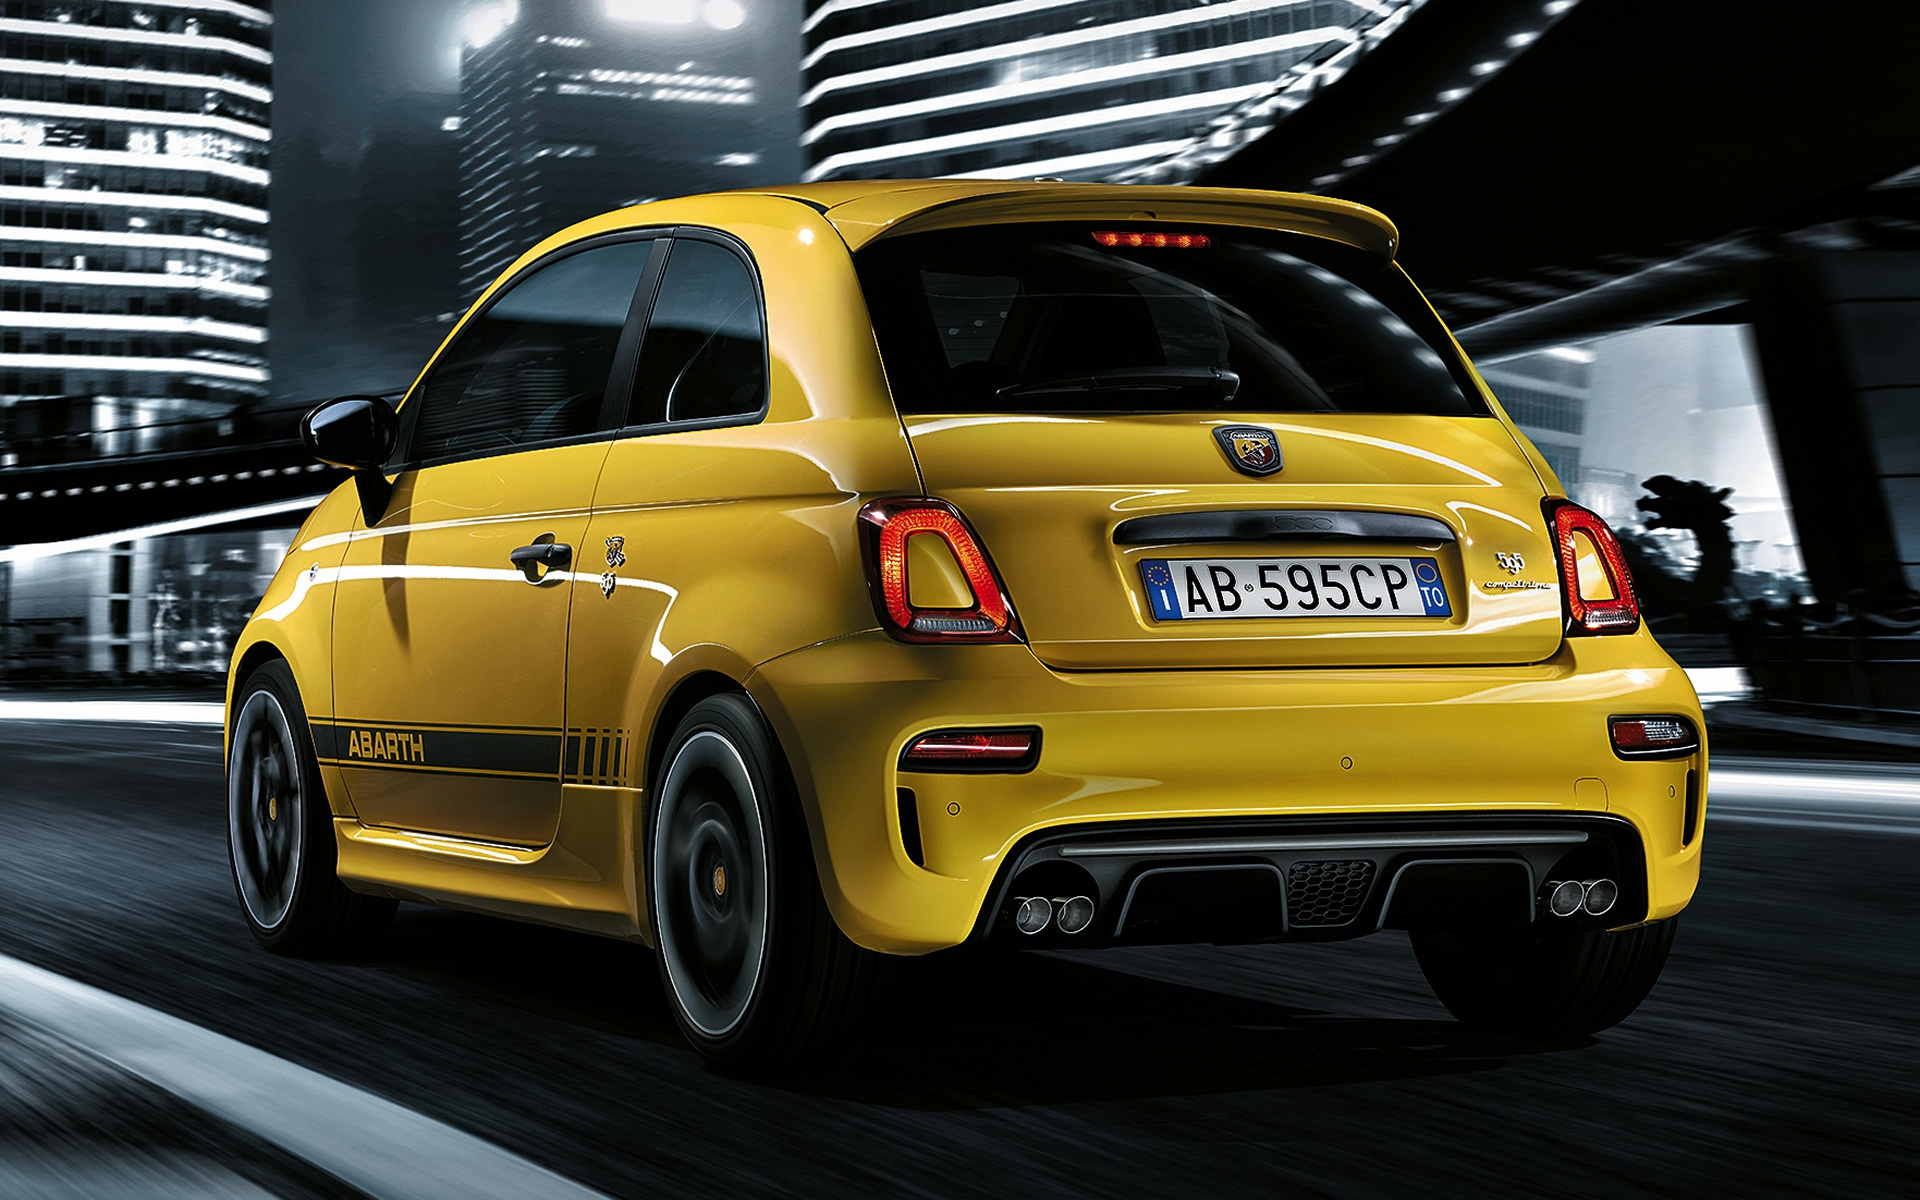 abarth 595 competizione fiat 500 hatchback hd range vehicle facelift revised gains features power rear ws forcegt gear carpixel wide